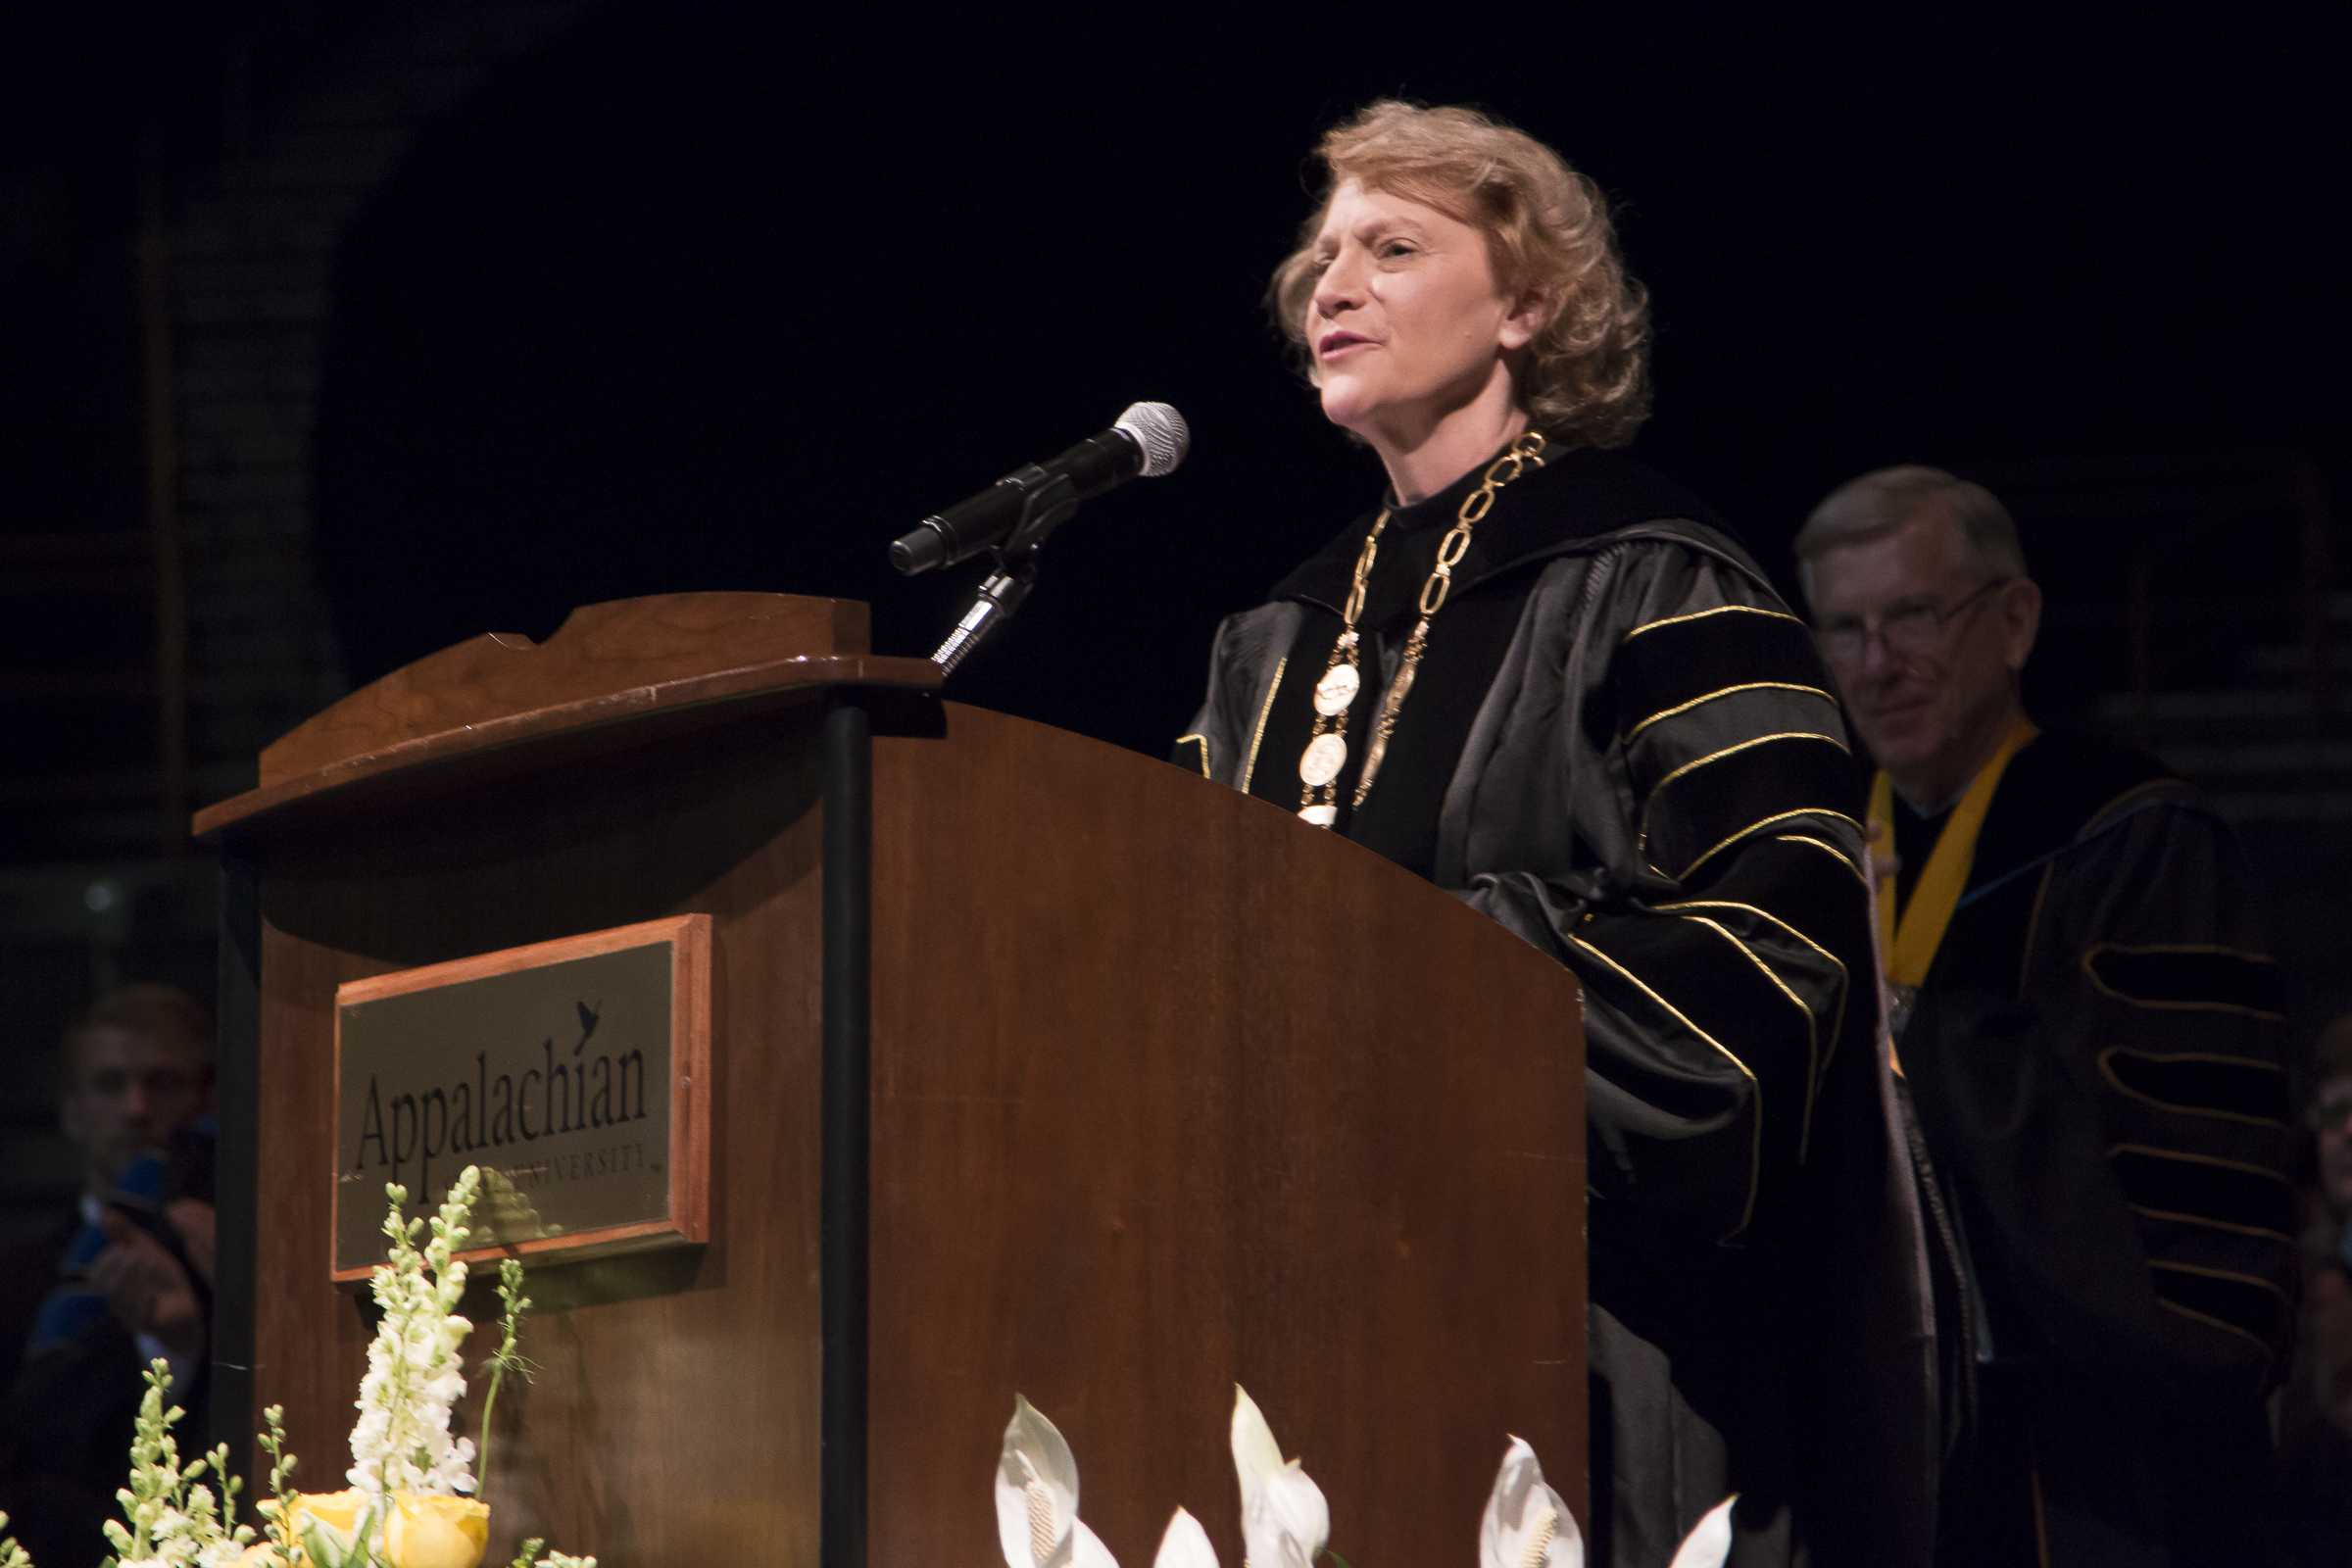 Faculty Senate sends survey to evaluate Chancellor Everts